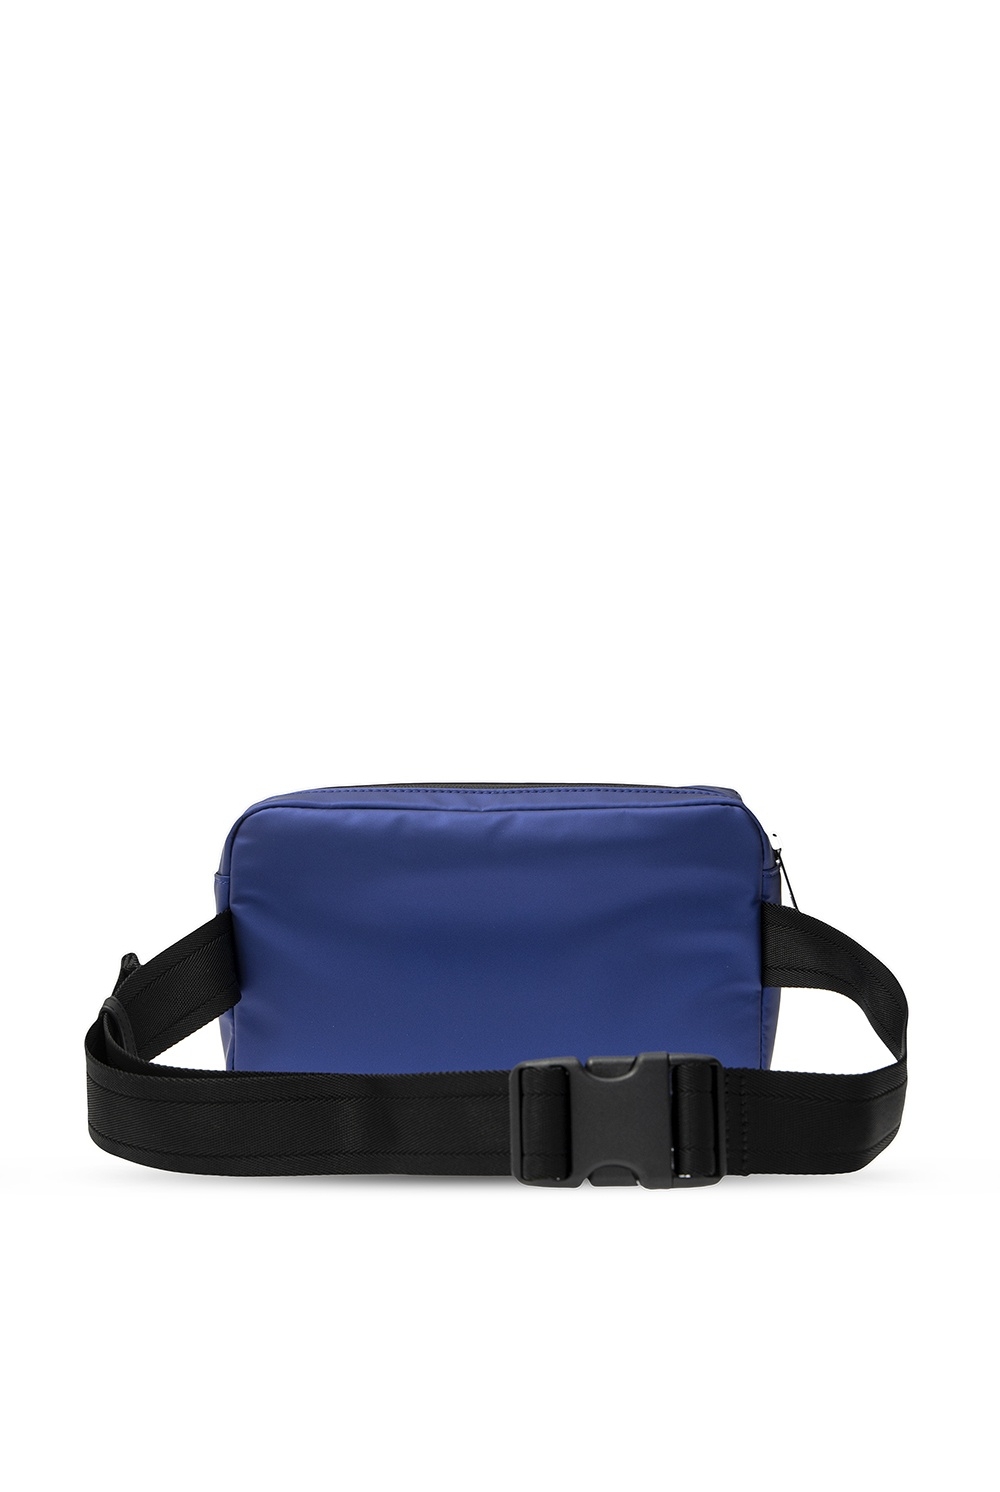 Diesel Belt bag with logo